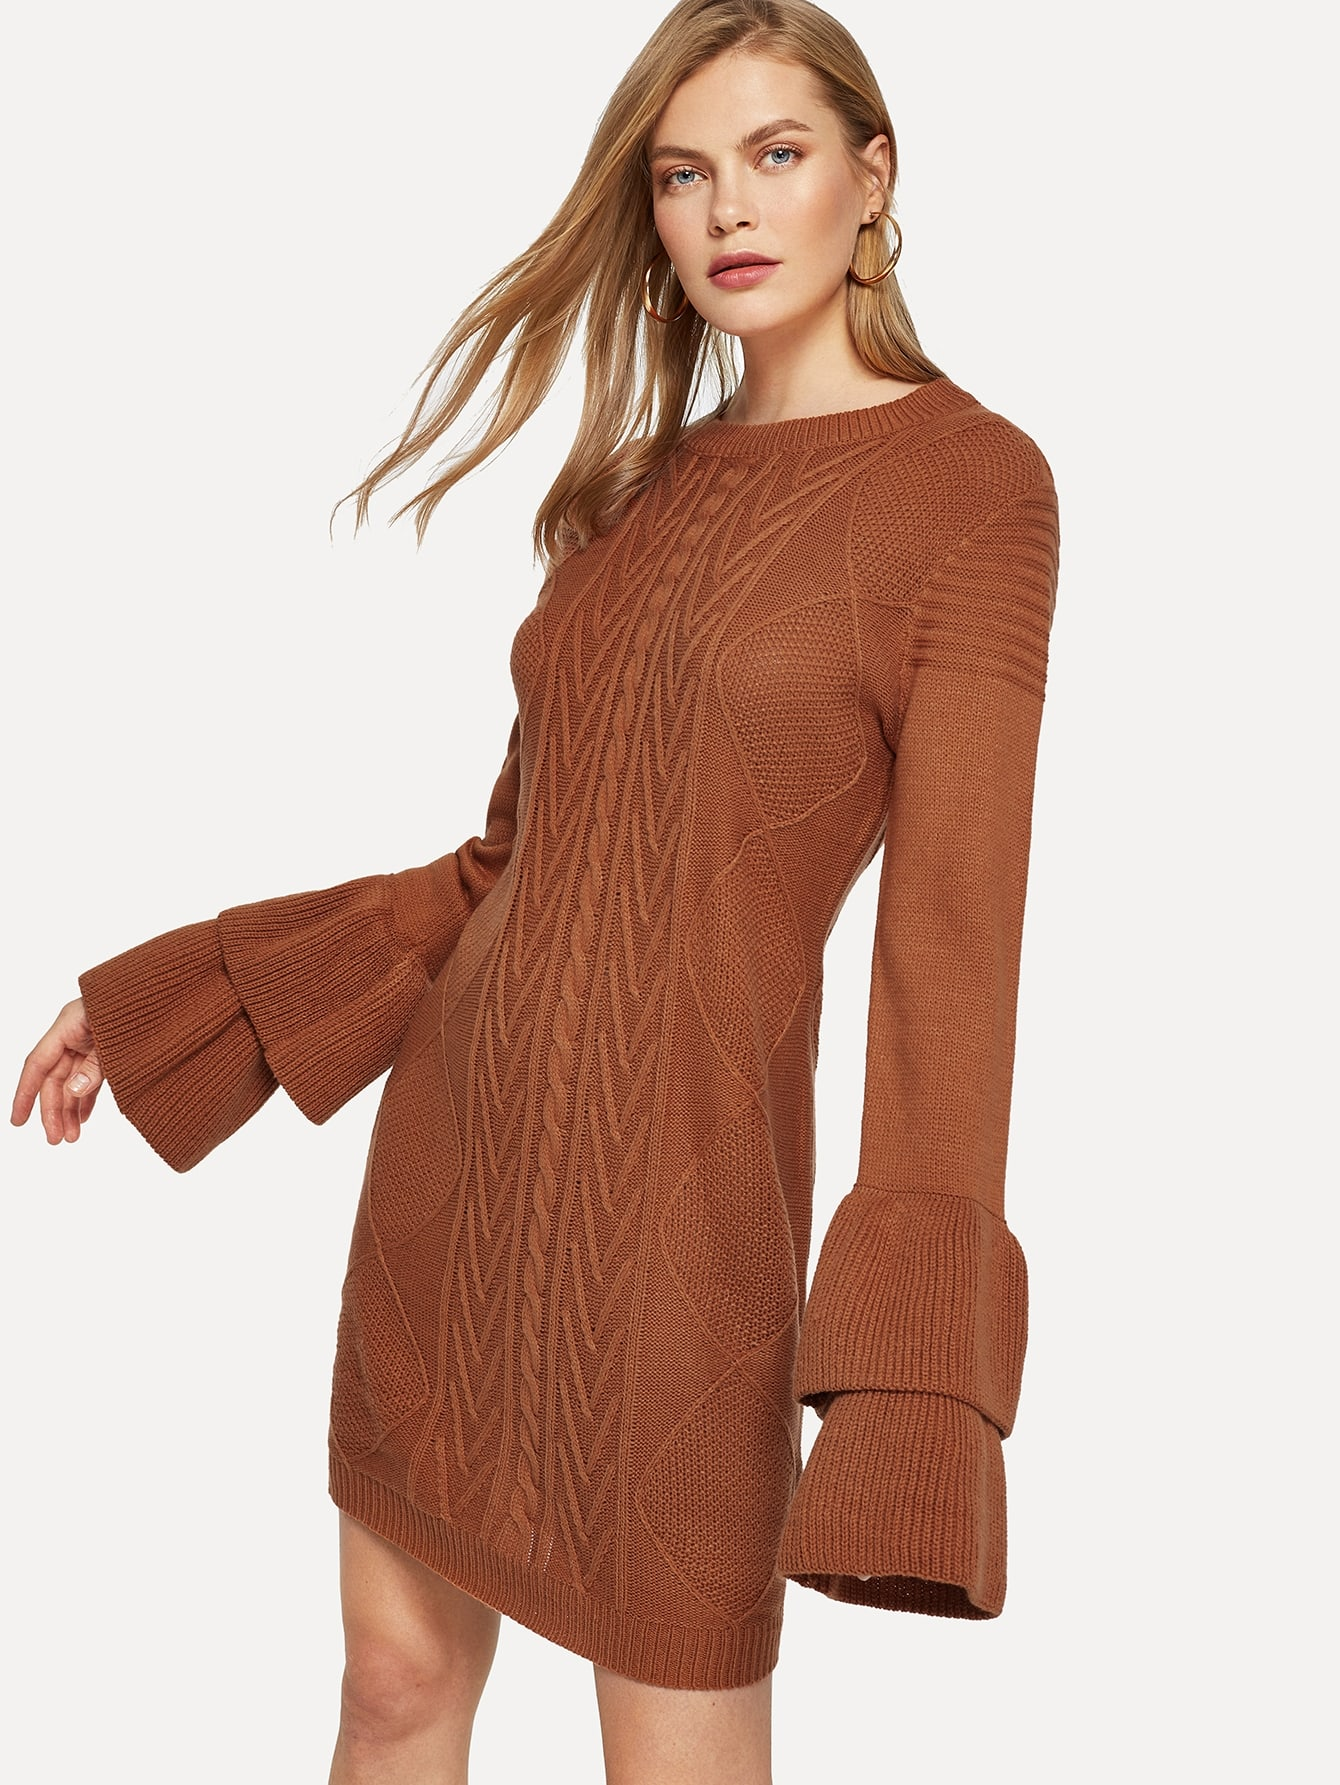 Layered Flounce Sleeve Mixed Knit Sweater Dress Layered Flounce Sleeve Mixed Knit Sweater Dress